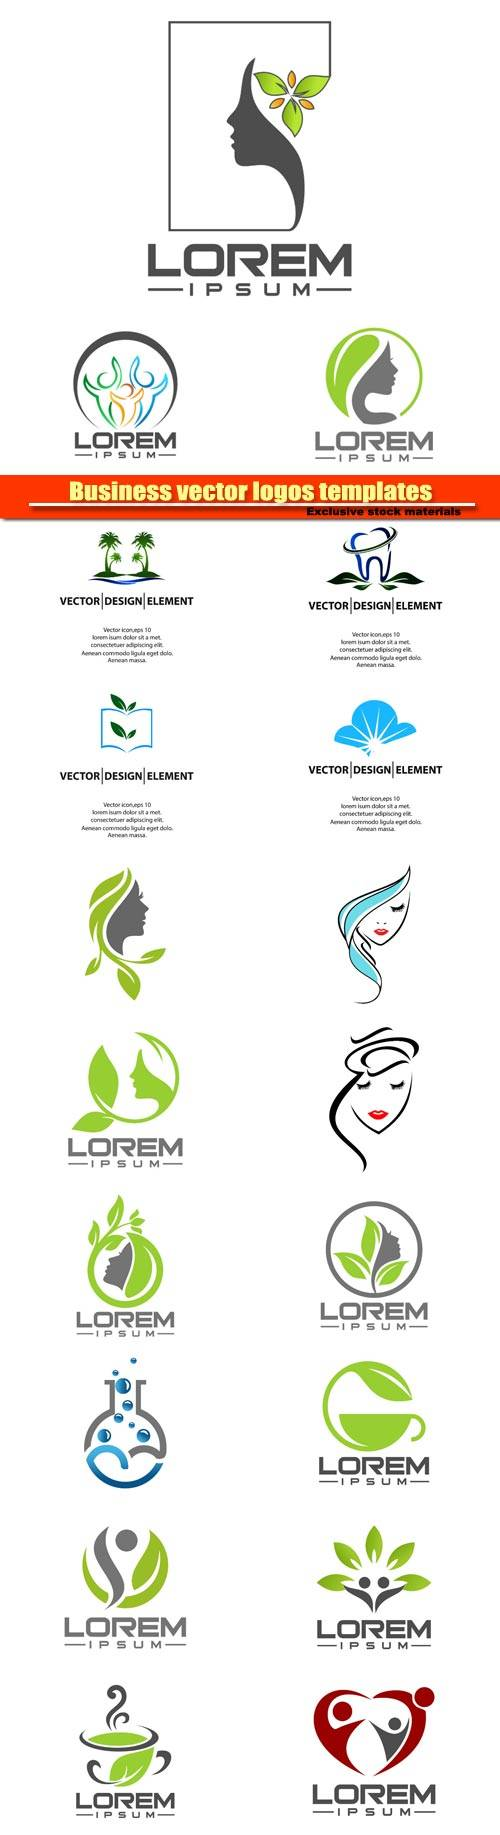 Business vector logos templates №10